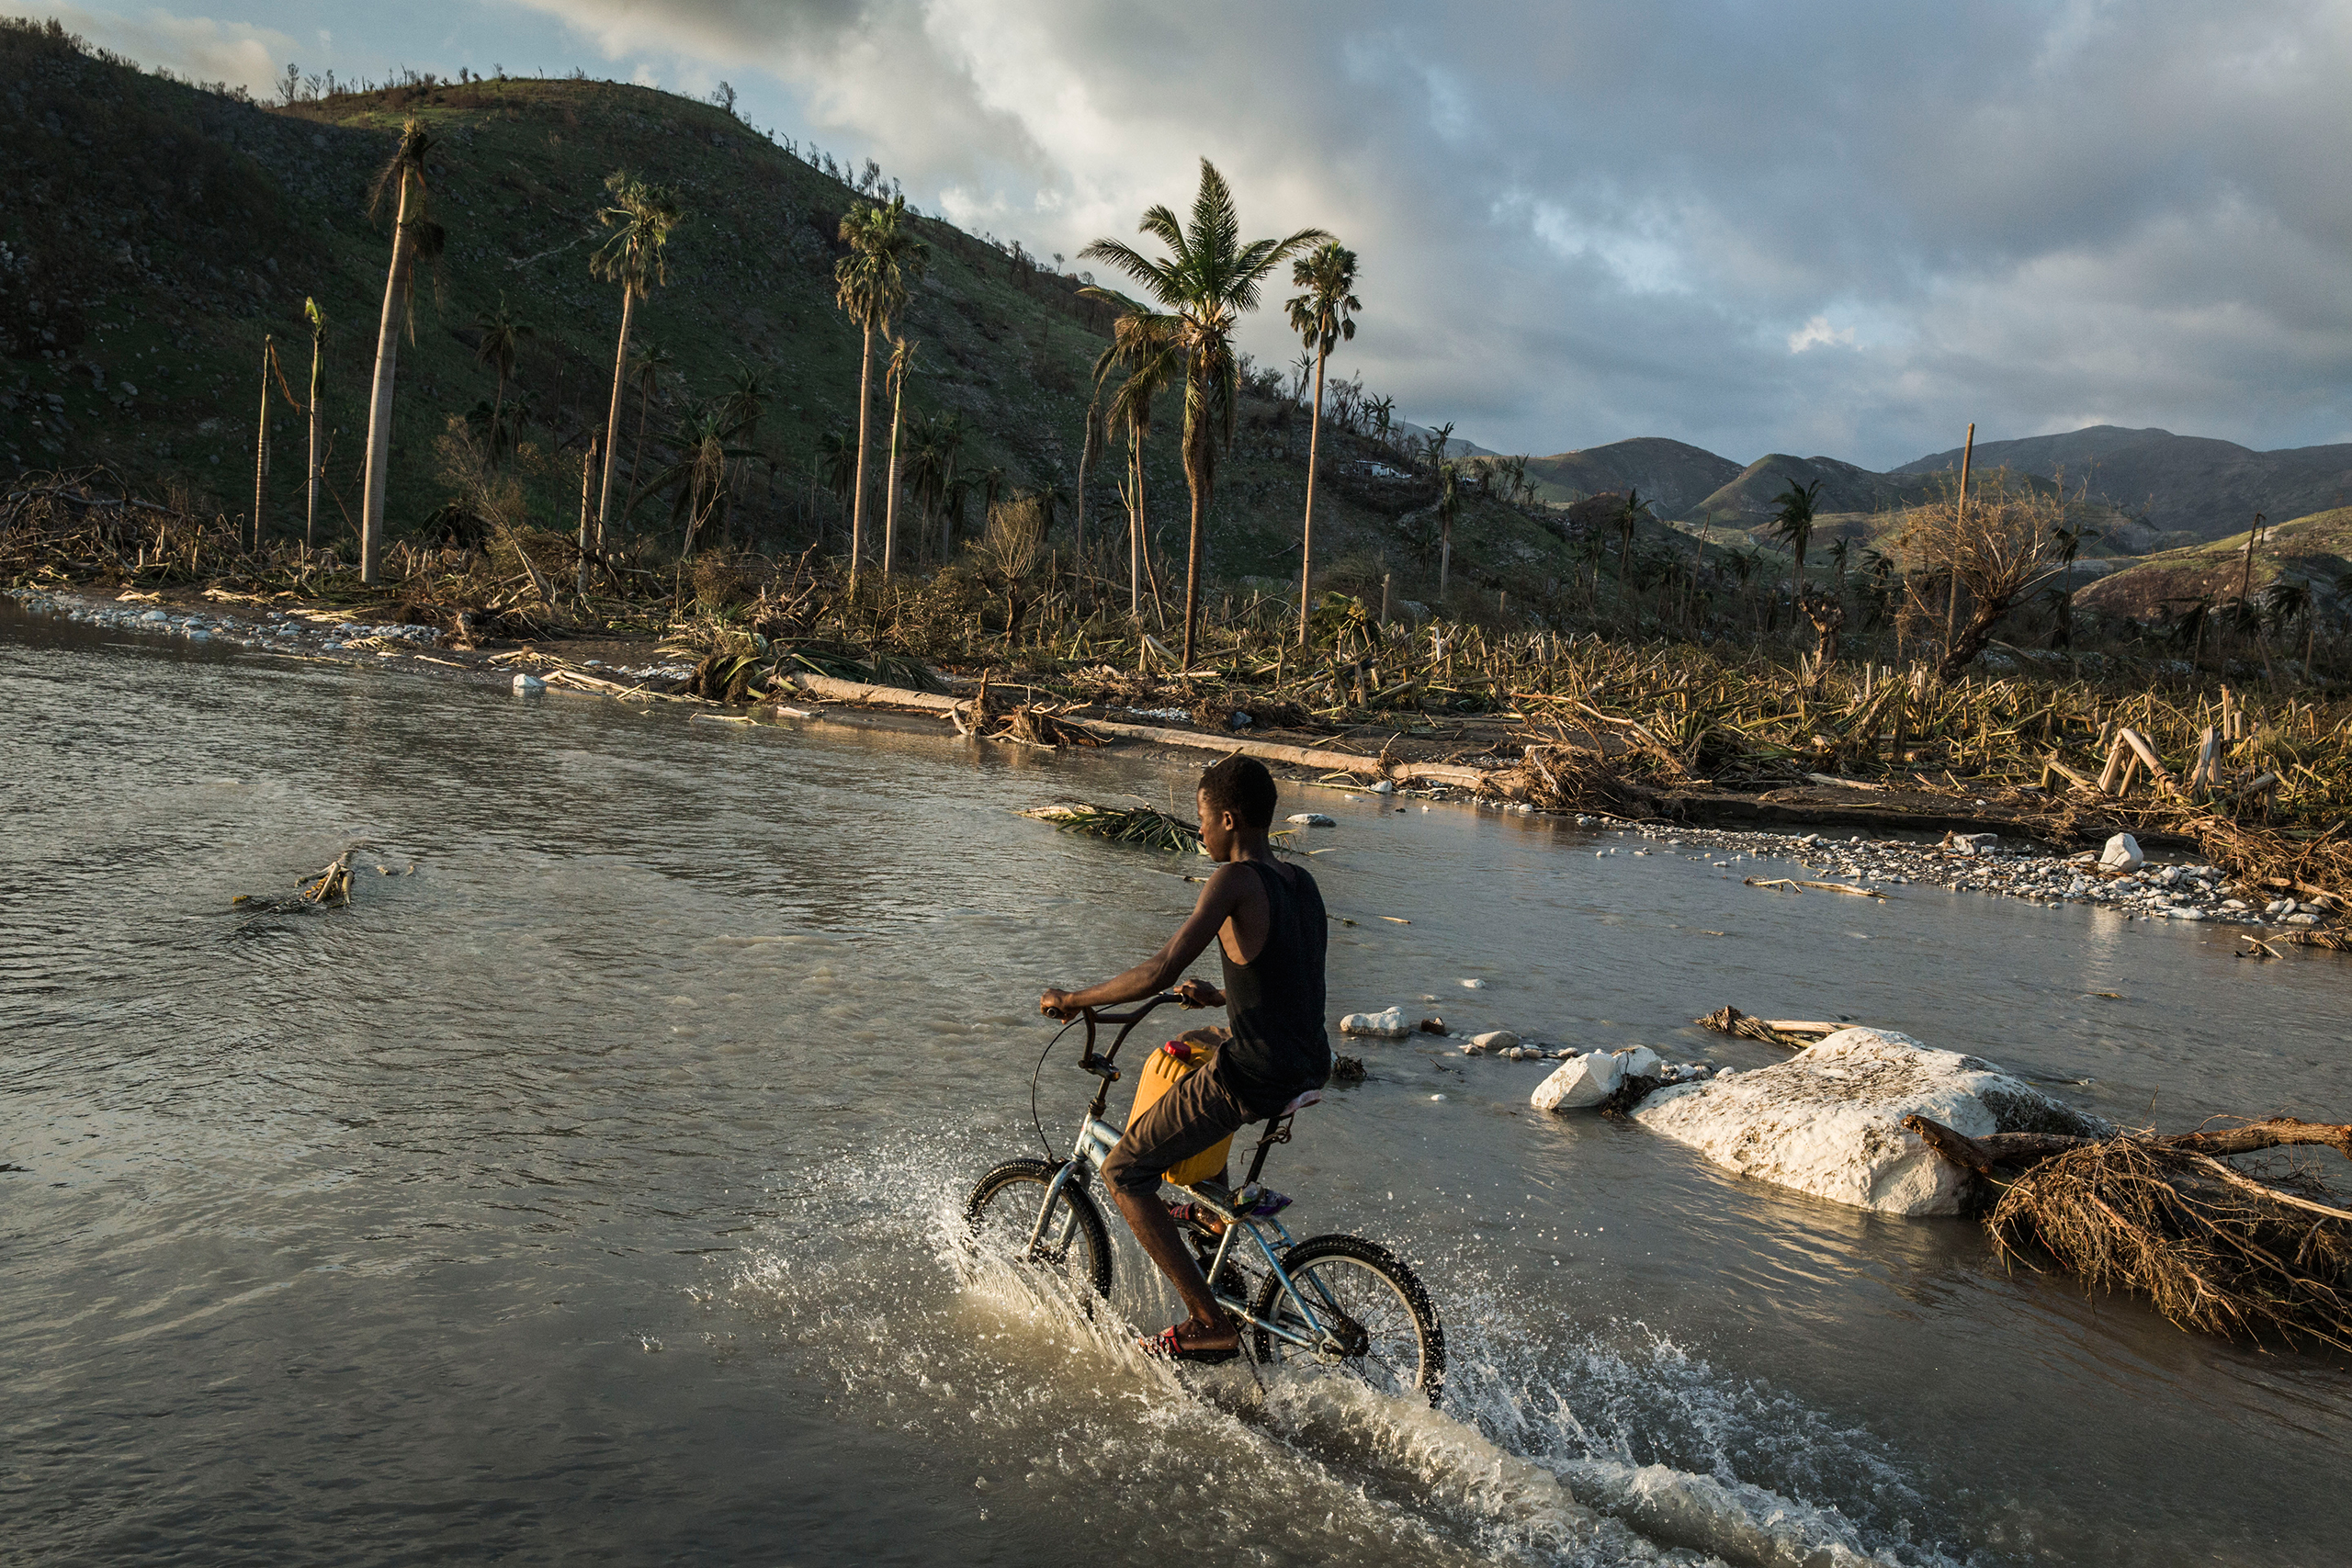 A boy rides his bicycle along a flooded road in a devastated area near Port Salut, in southwestern Haiti, on Oct. 8, 2016.